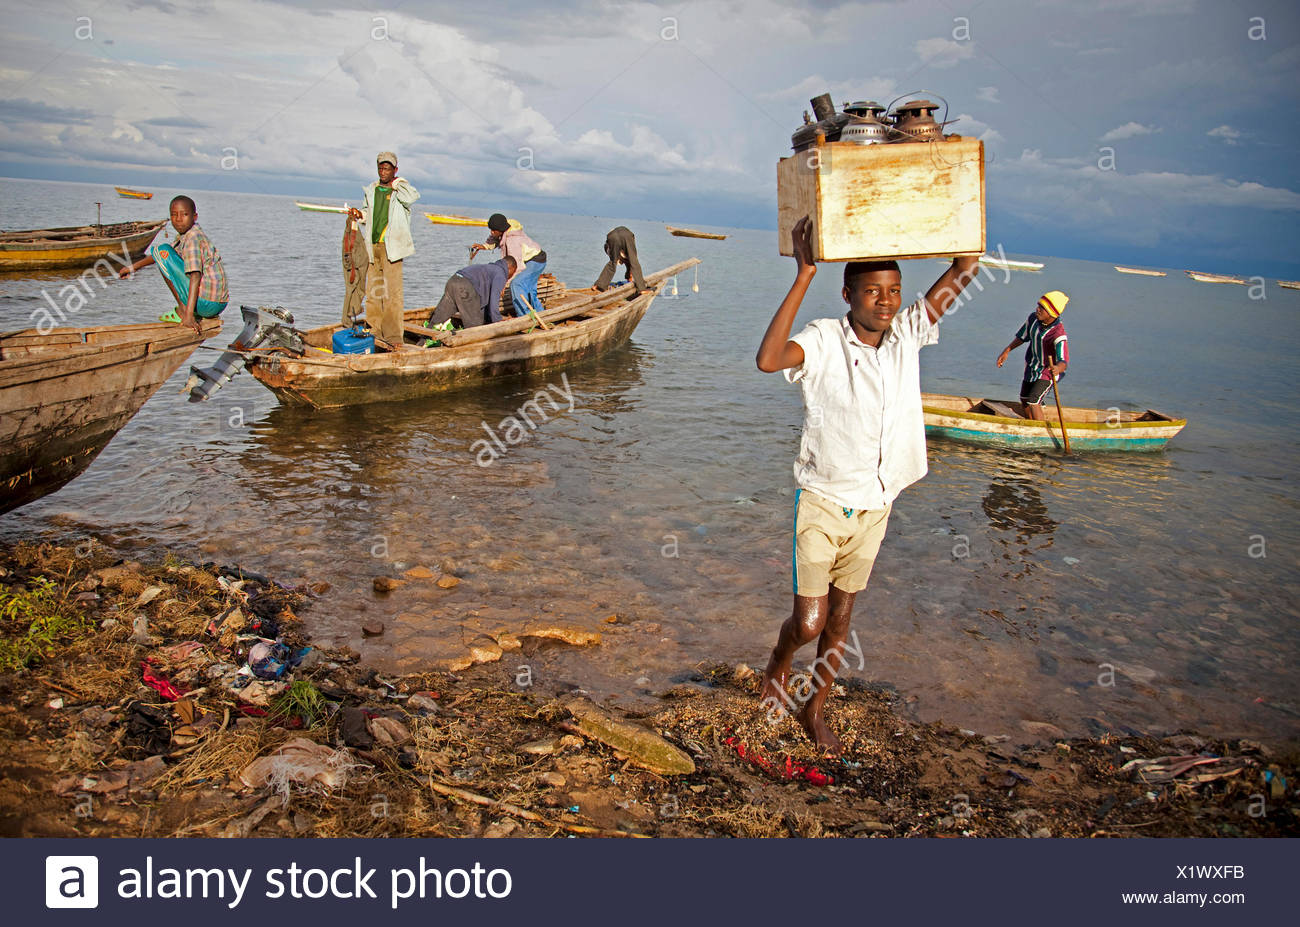 a boy carrying a box with oil lamps from fishing boat, Lake Tanganyika, Burundi, Makamba, Mvugo, Nyanza Lac - Stock Image